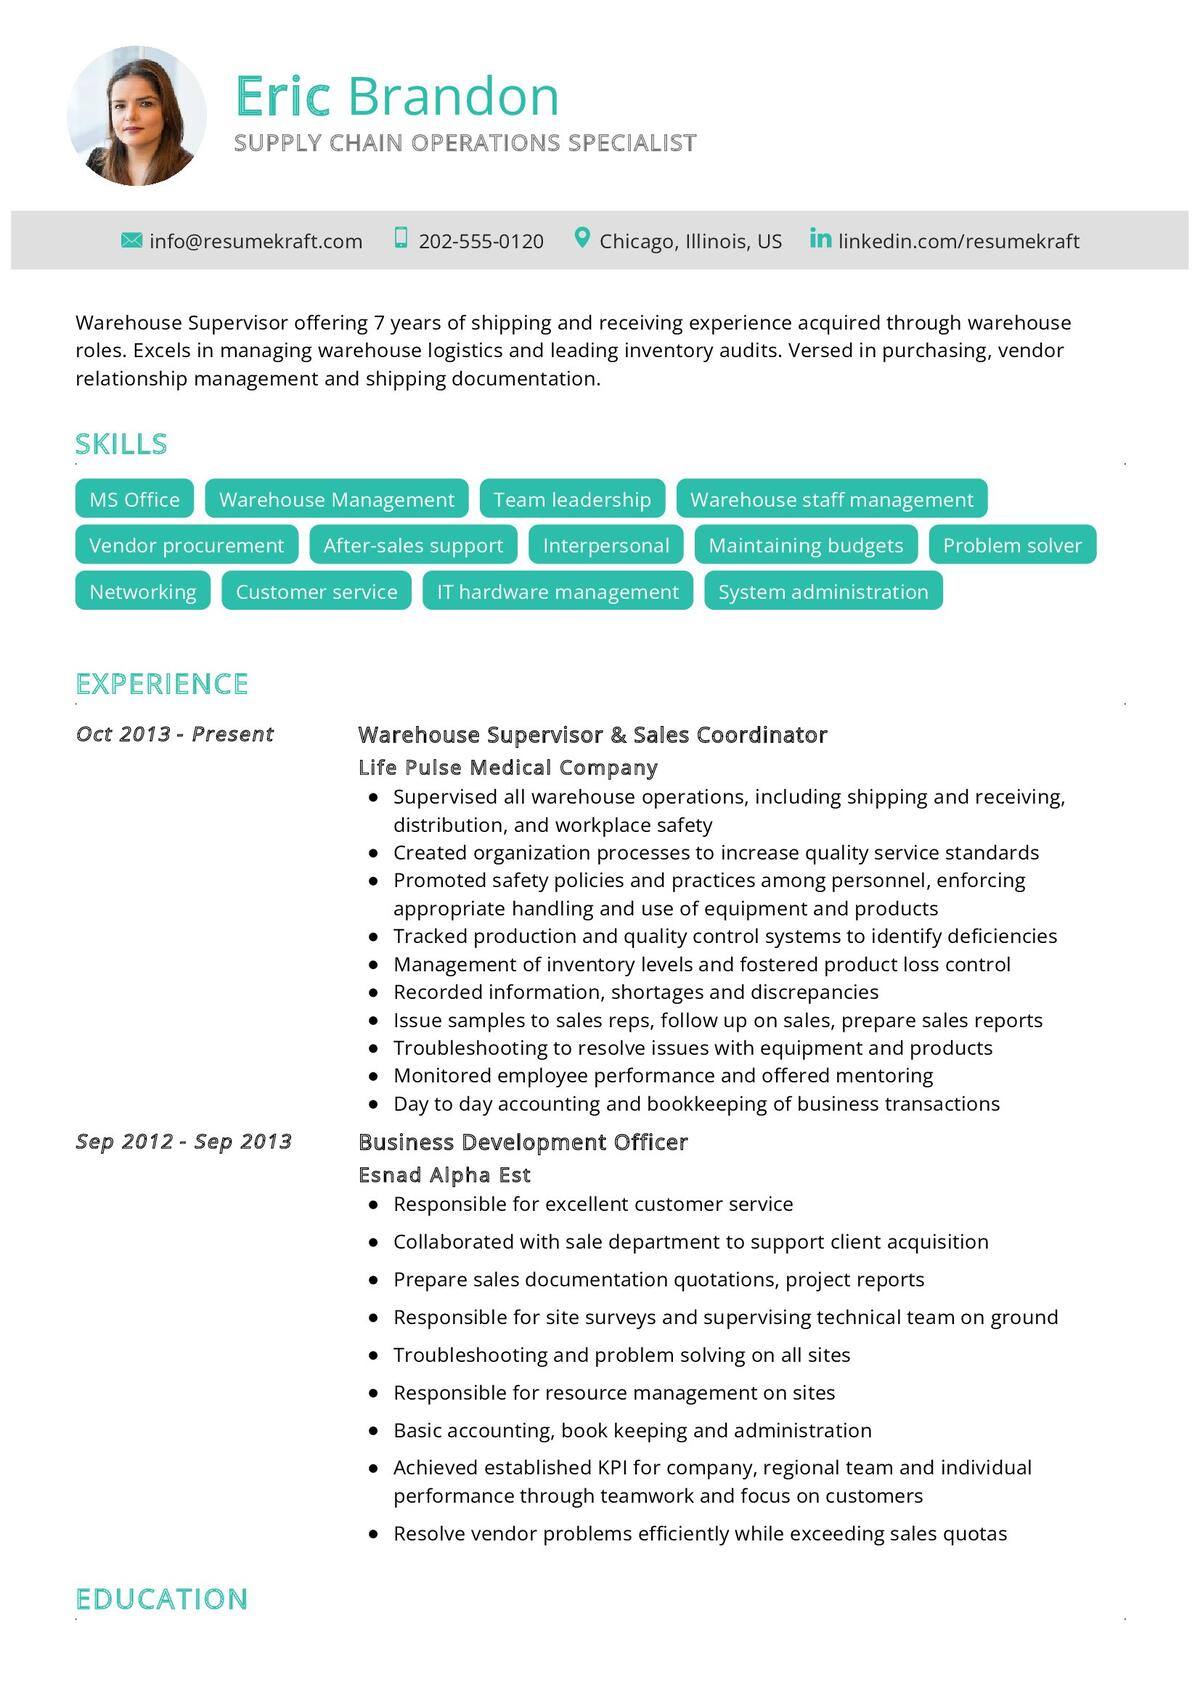 Supply Chain Operations CV Example